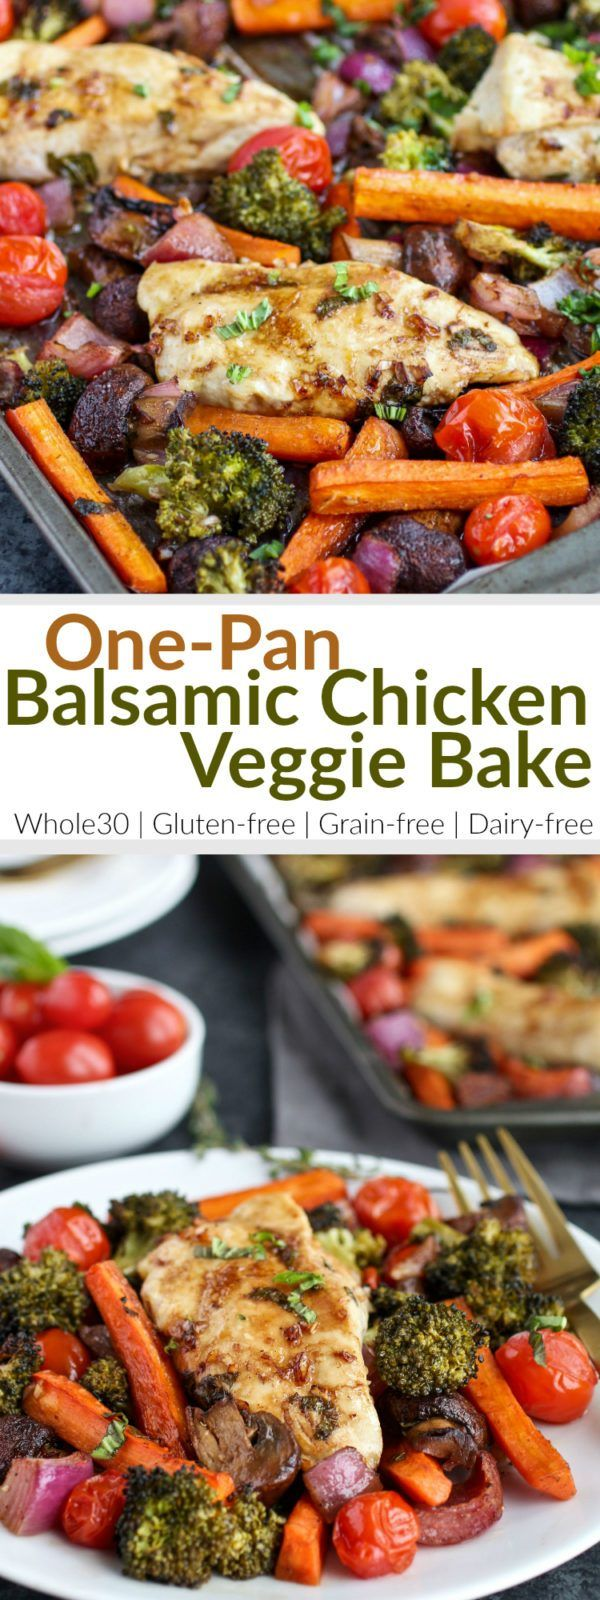 Best 25 whole food recipes ideas on pinterest whole 30 recipes healthy easy delicious one pan balsamic chicken veggie bake is quick to forumfinder Choice Image